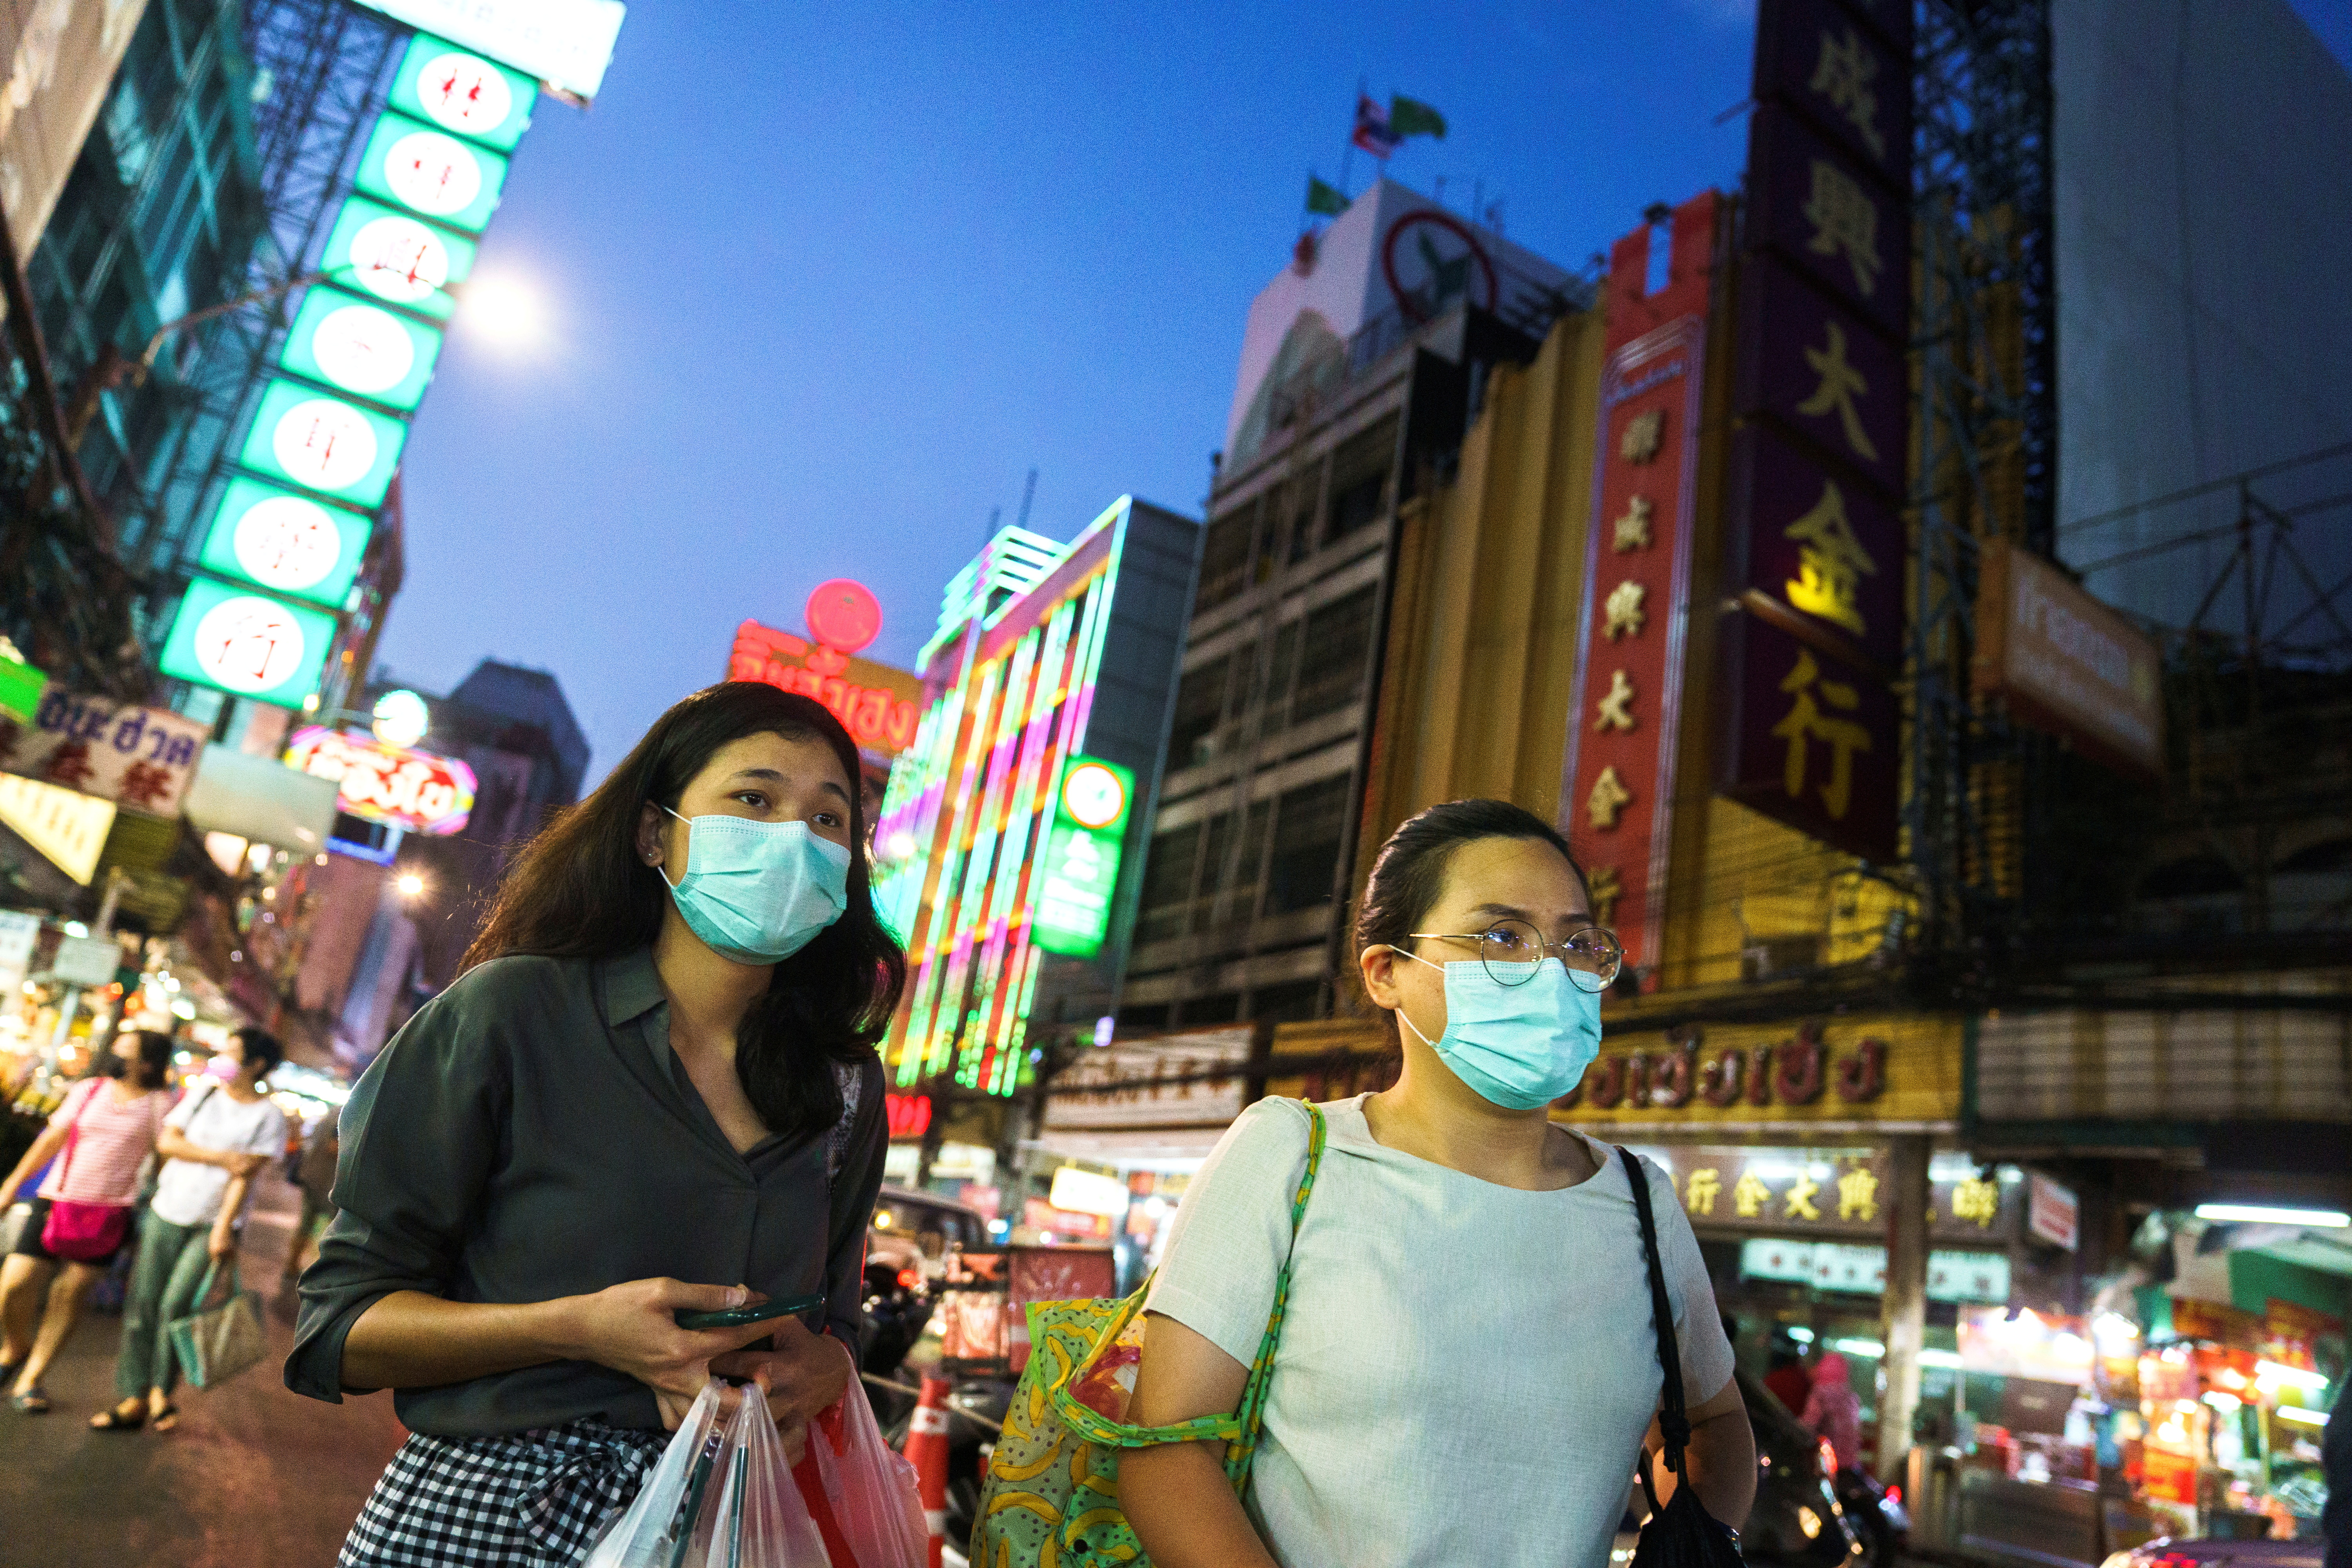 People wearing face masks shop for street food in Chinatown amid the spread of the coronavirus disease (COVID-19) in Bangkok, Thailand, January 6, 2021. REUTERS/Athit Perawongmetha/File Photo